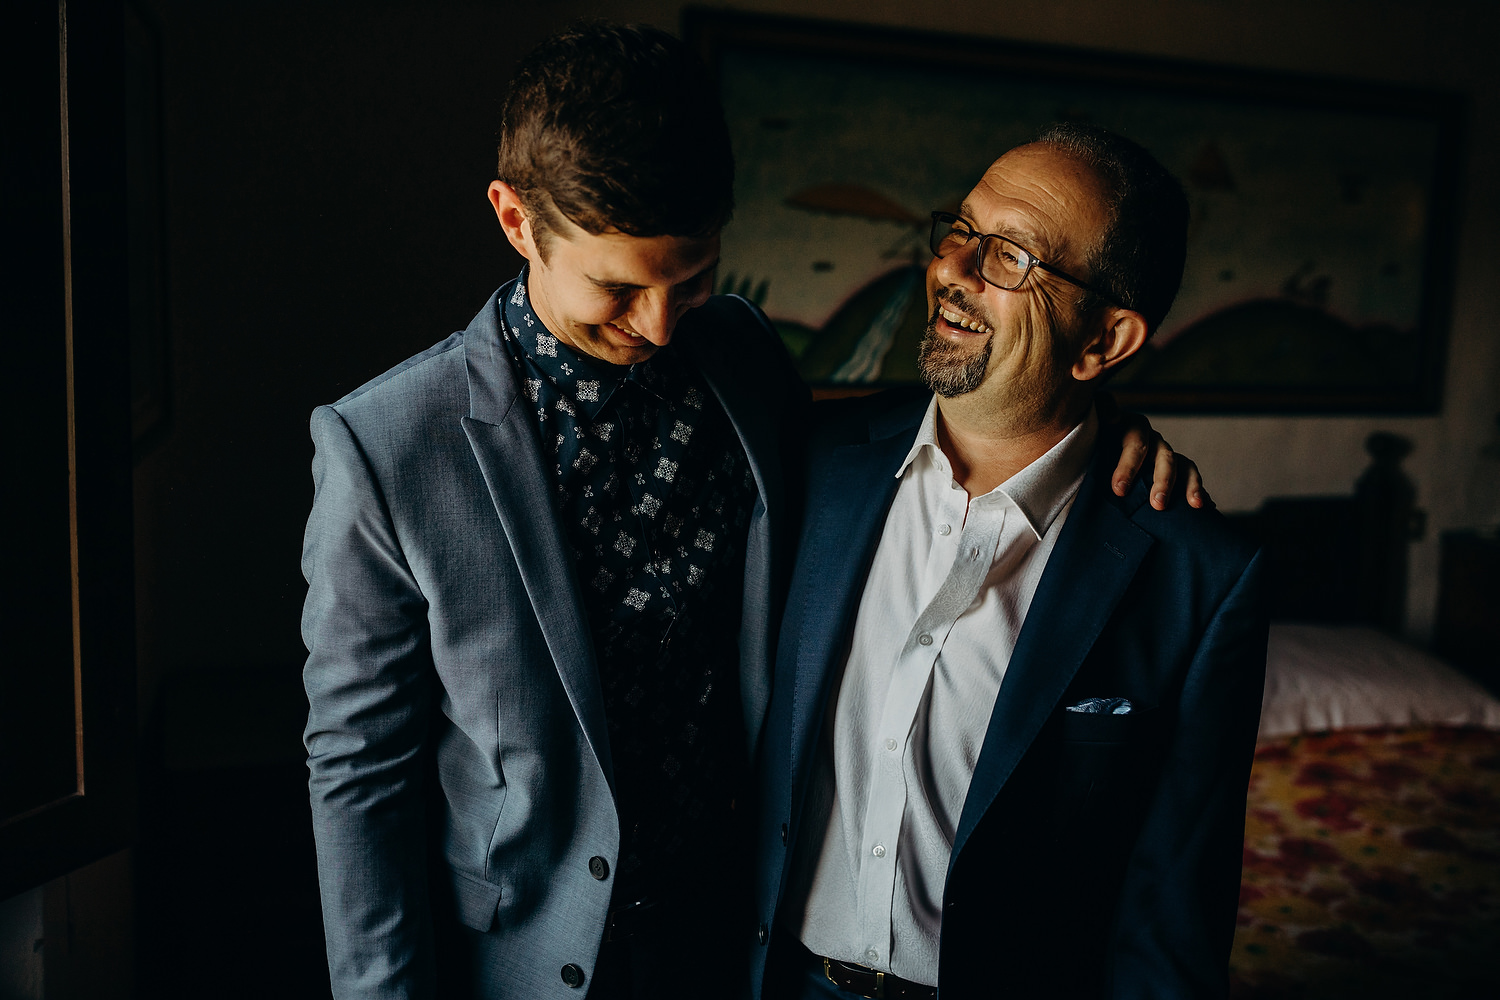 groom and father sharing a moment